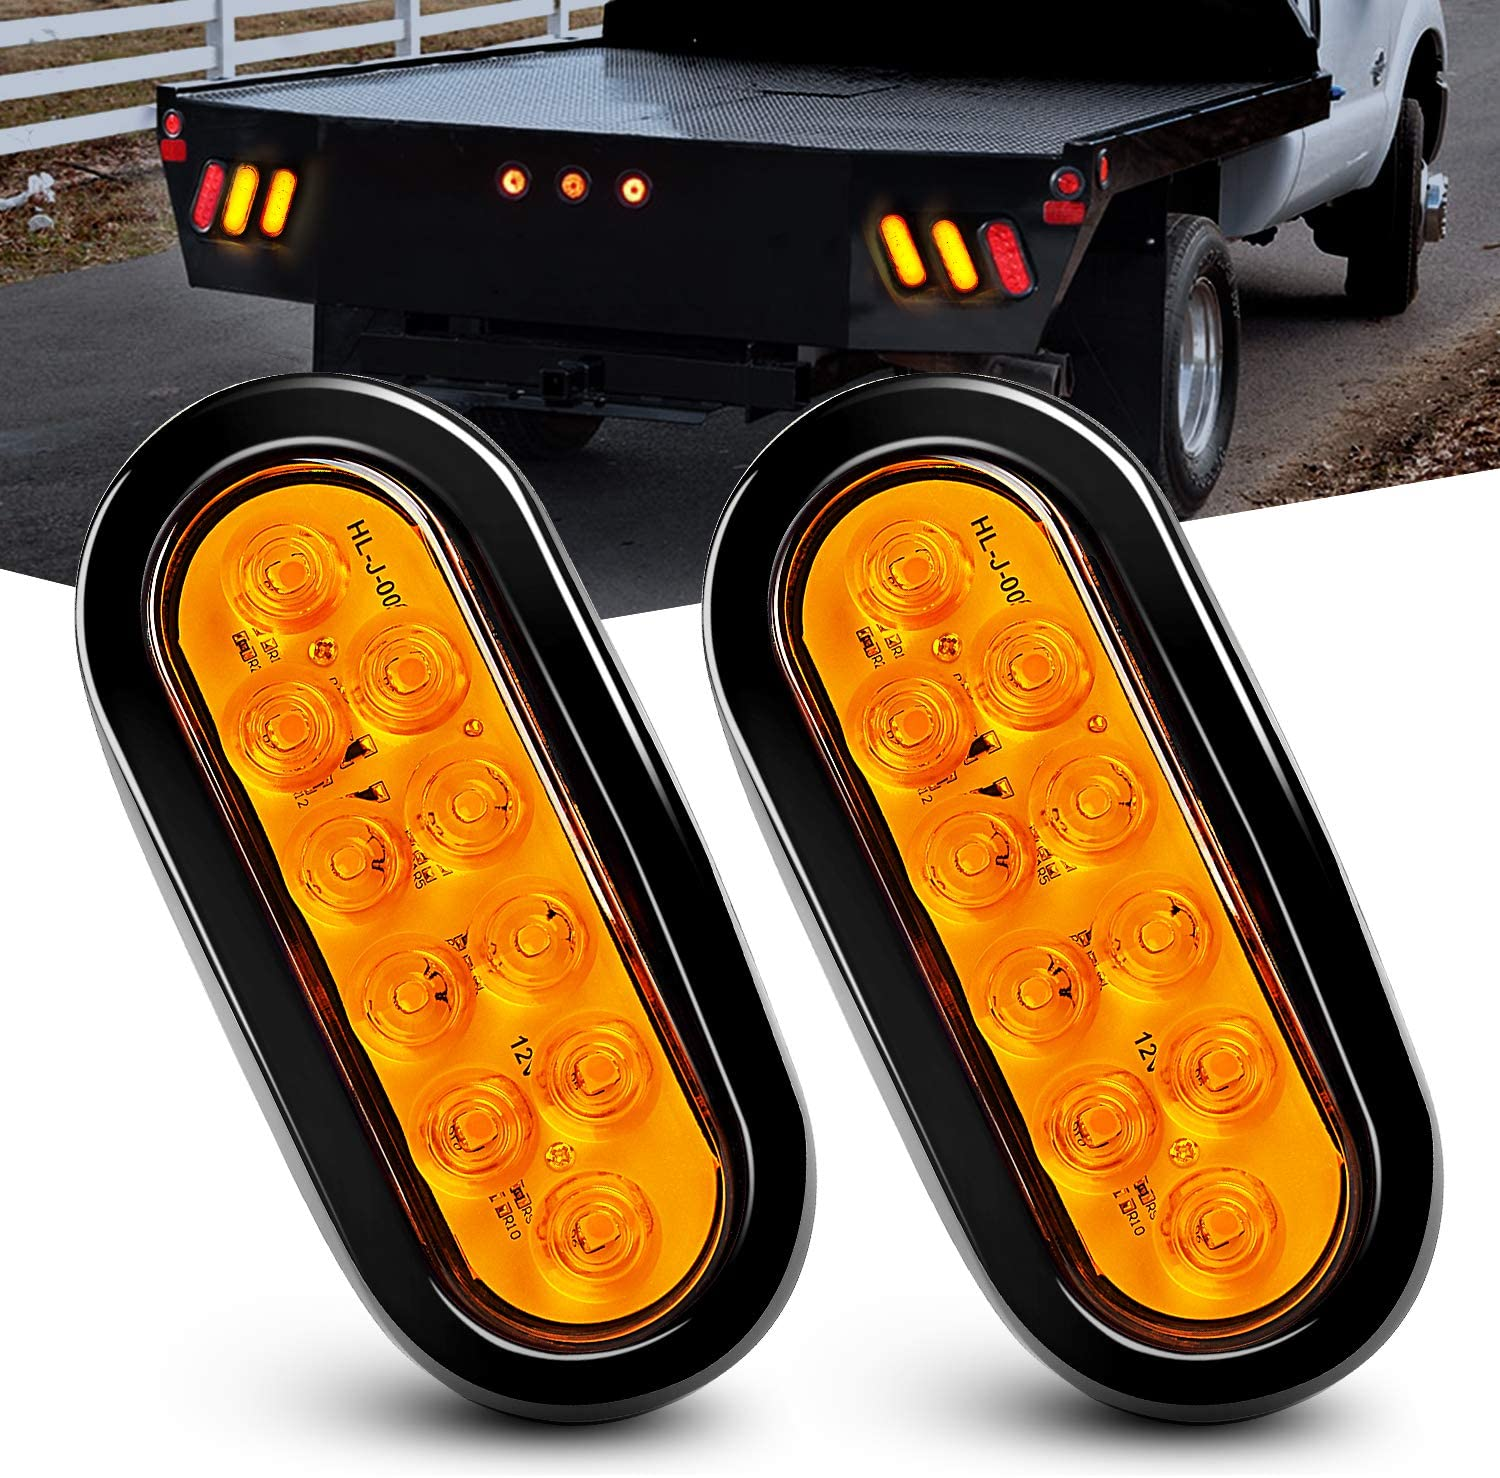 Nilight - TL-08 6 Inch Oval Amber LED Trailer Tail Lights 2PCS 10 LED W/Flush Mount Grommets Plugs IP67 Waterproof Turn Signals Trailer Lights for RV Truck Jeep, 2 Years Warranty